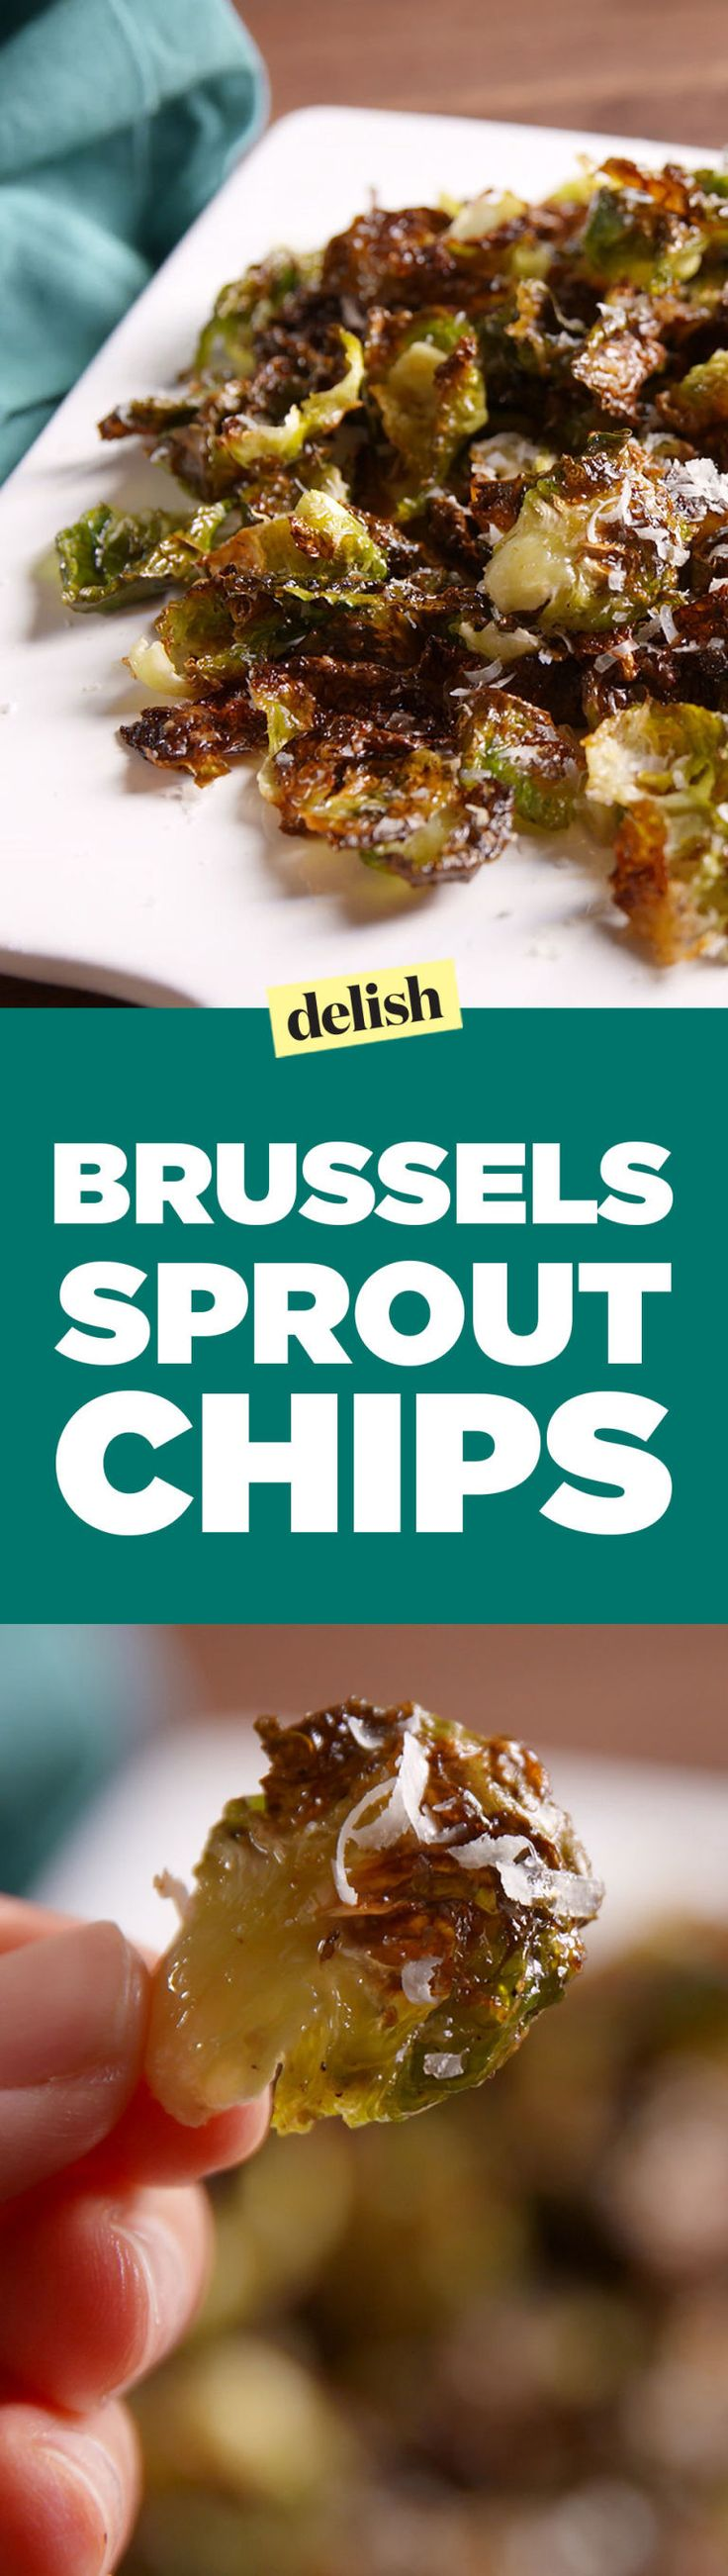 Brussels Sprouts Chips Are Everything Kale Chips Could Never Be